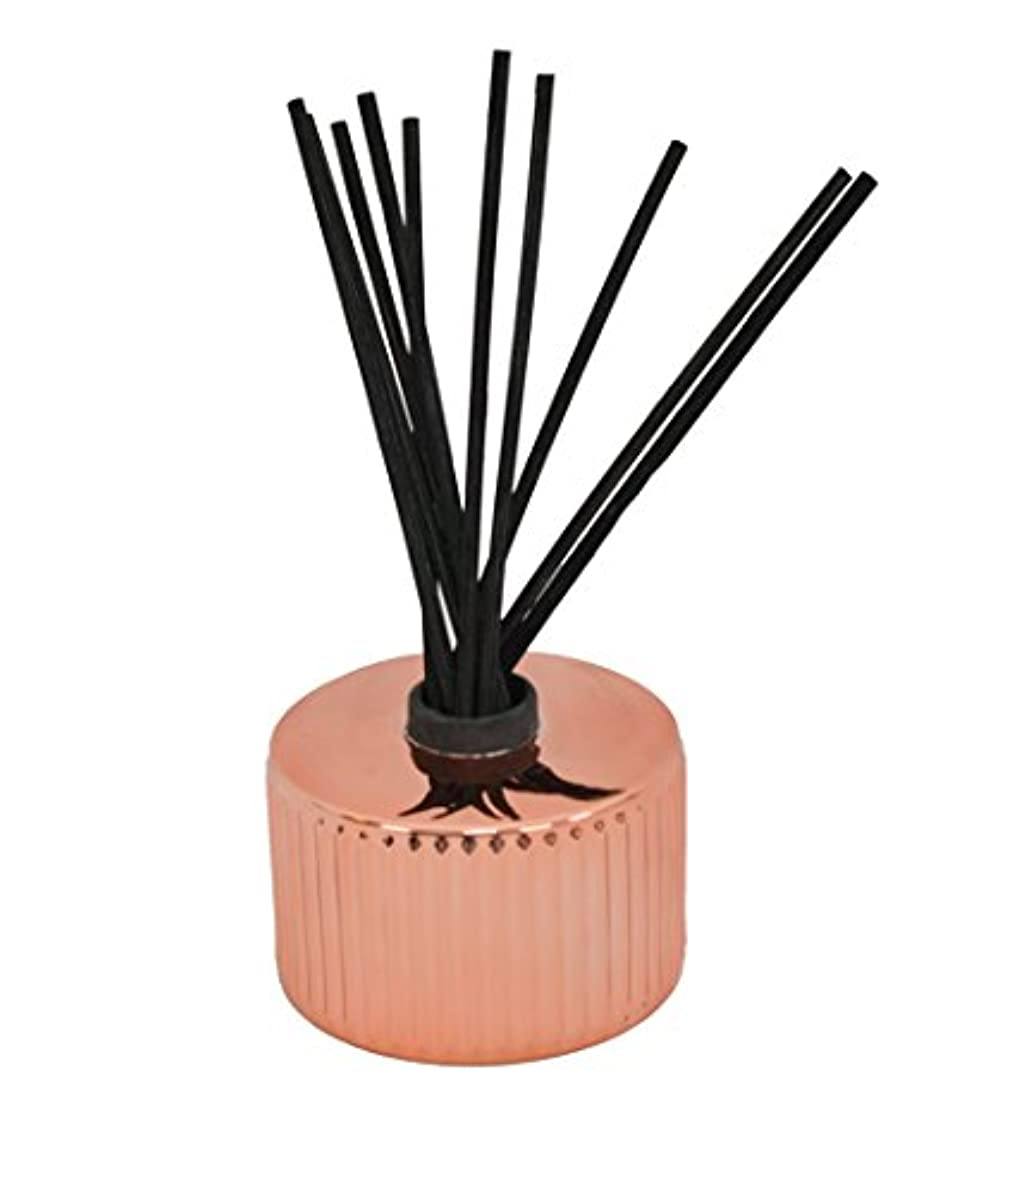 時間メルボルンマッシュCapri Blue Gilded Muse Reed Diffuser - Pink Grapefruit & Prosecco 230ml/7.75oz並行輸入品